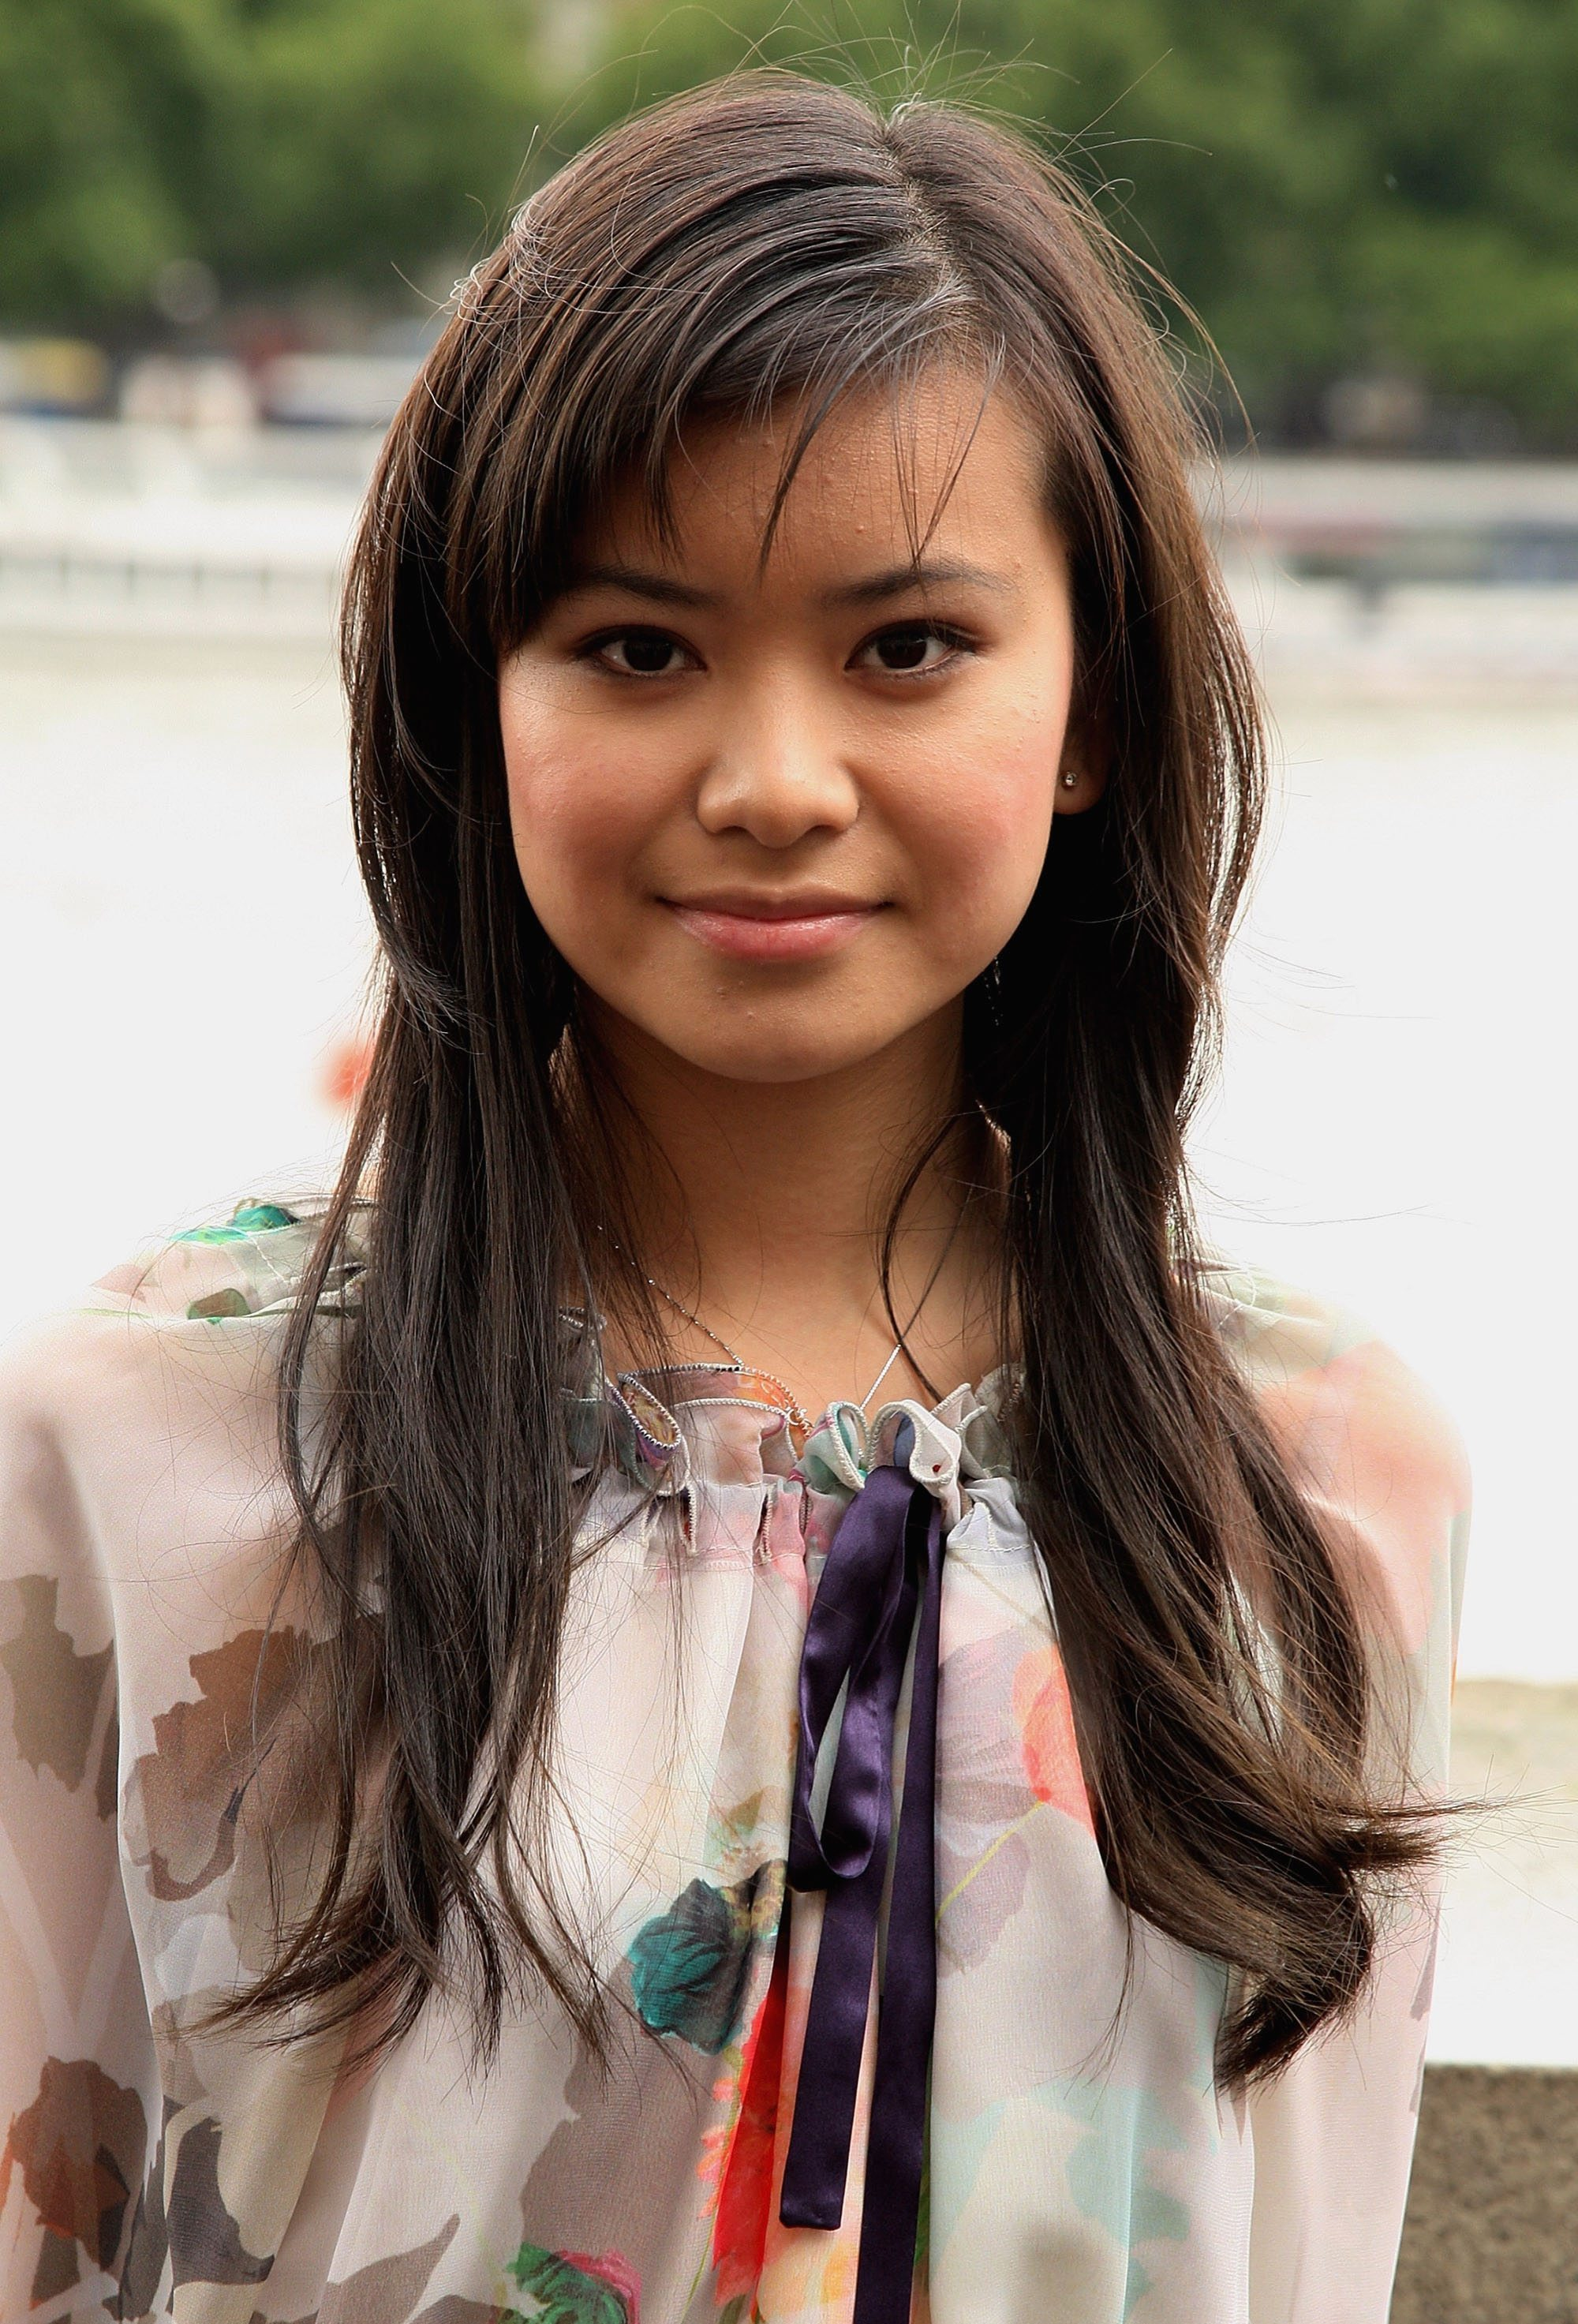 katie leung 2014katie leung instagram, katie leung film, katie leung, katie leung net worth, katie leung 2015, katie leung imdb, katie leung twitter, katie leung cho chang, katie leung movies, katie leung boyfriend, katie leung 2014, katie leung interview, katie leung bikini, katie leung facebook, katie leung kiss